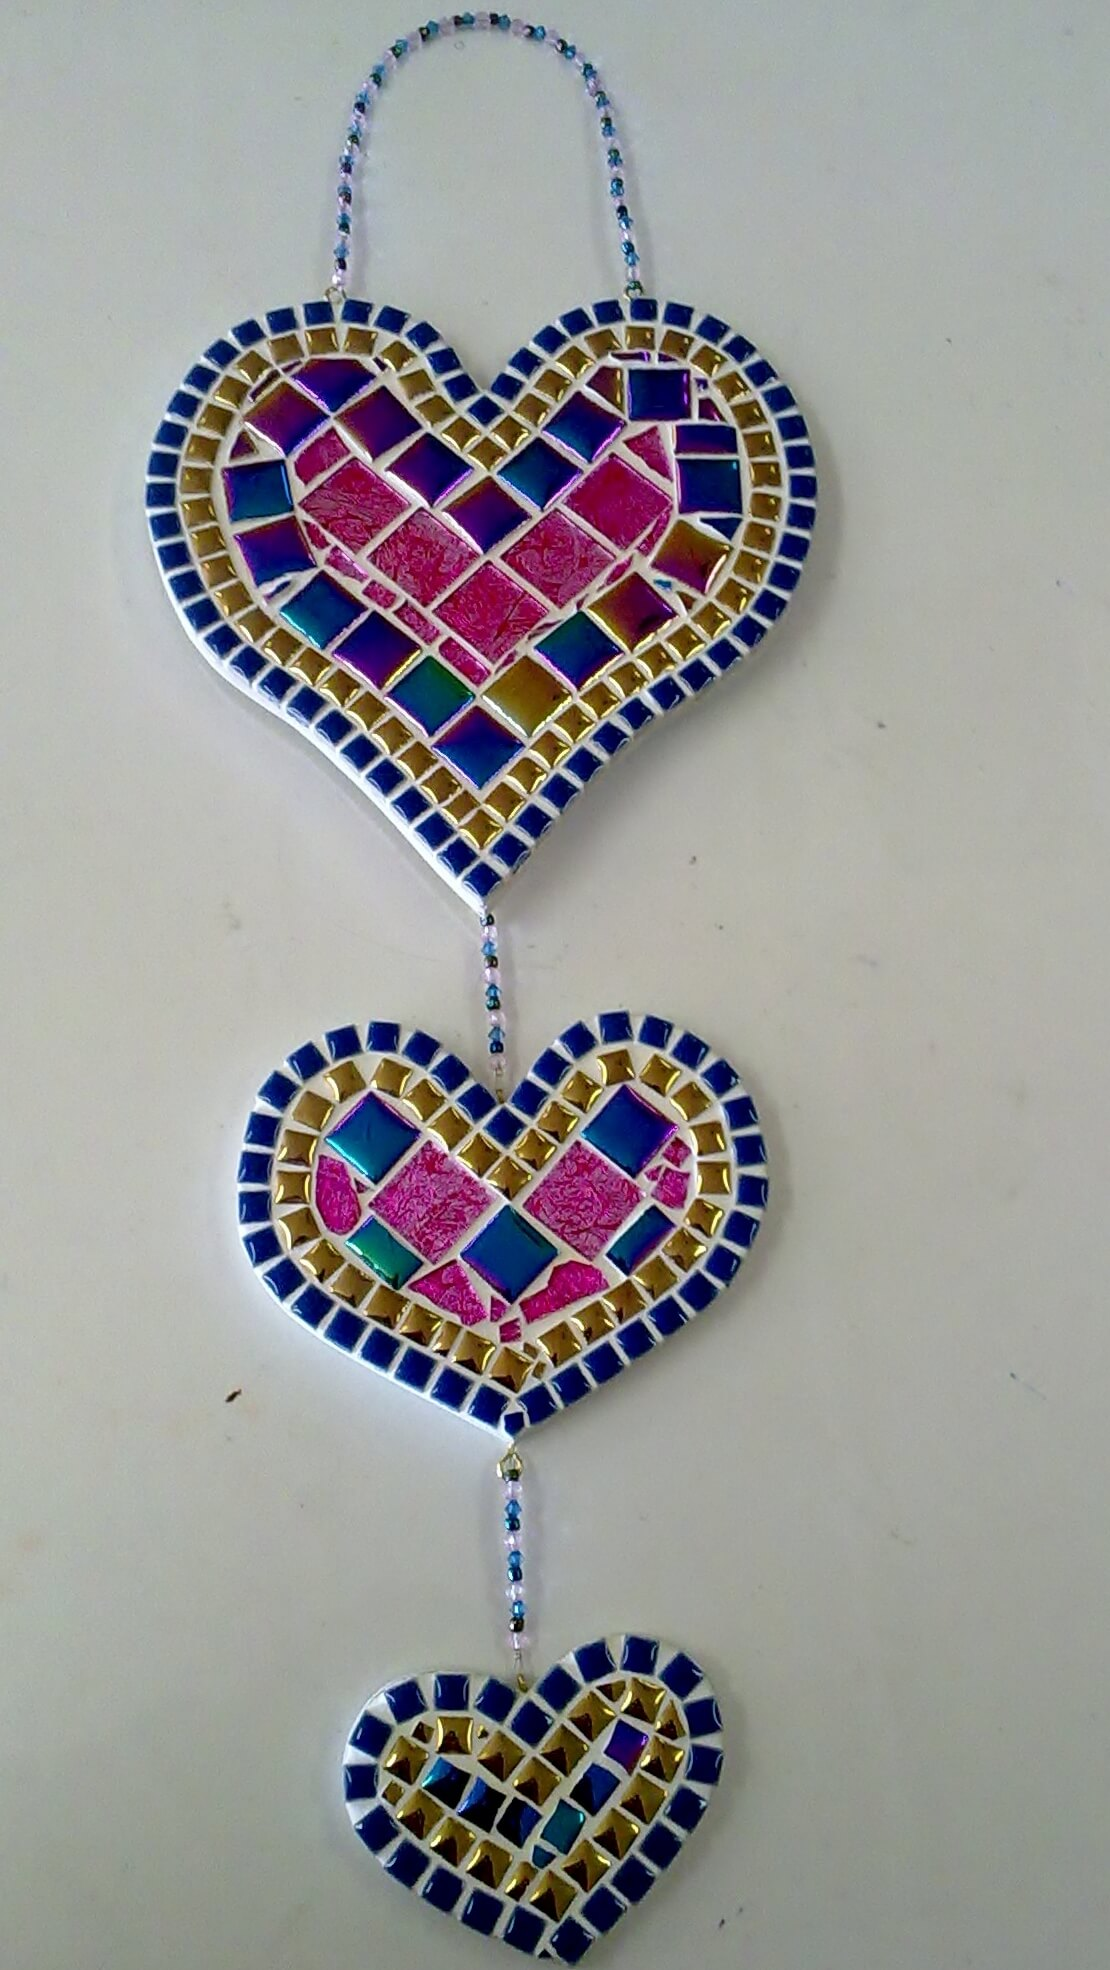 Mosaic'd Tiered Heart R310